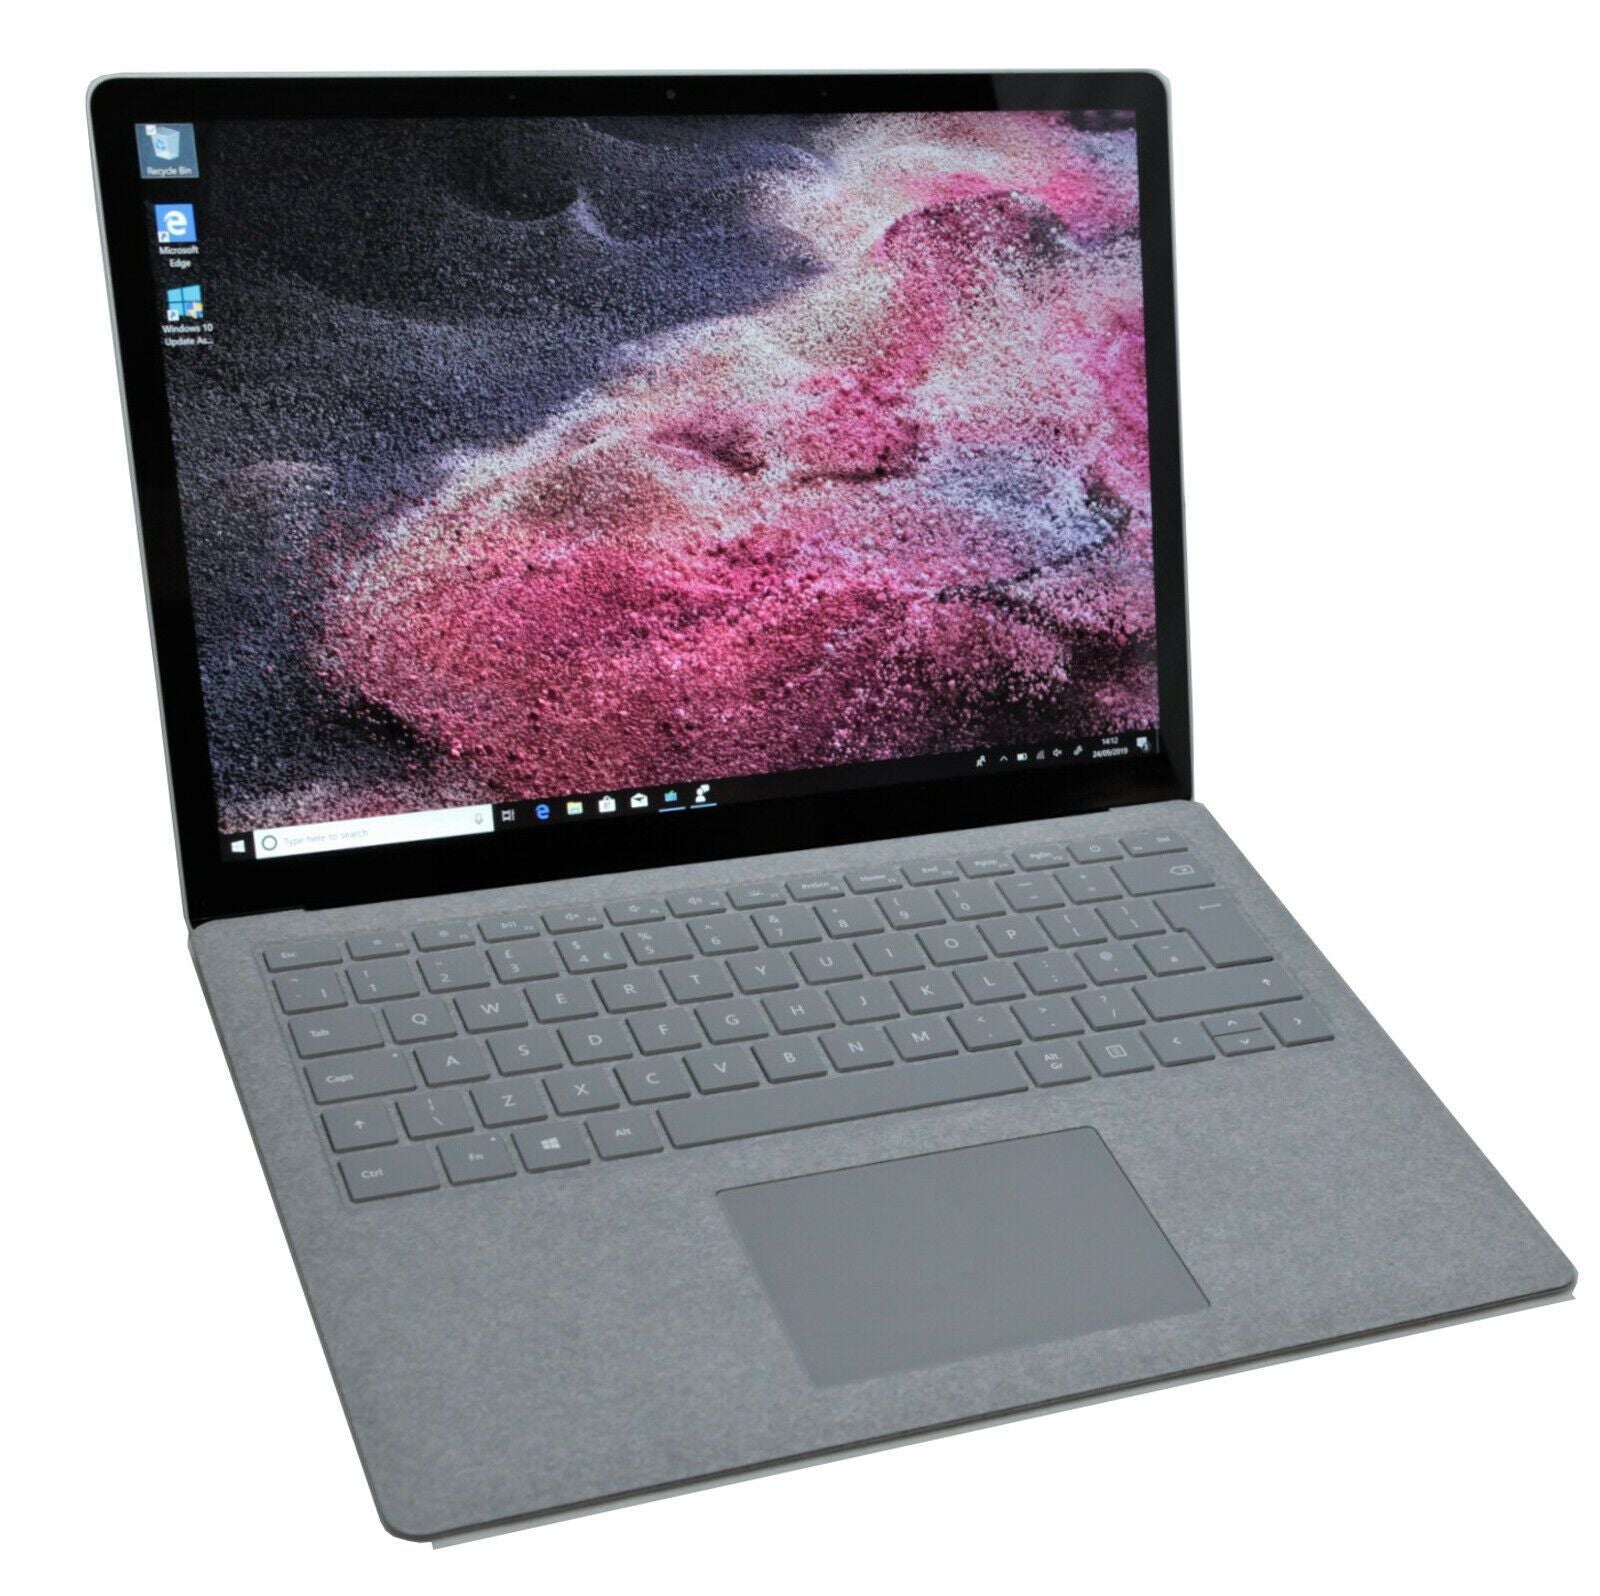 Microsoft Surface Laptop 2: Core i7-8650U 8GB RAM, 256GB SSD, 2020 Warranty - CruiseTech